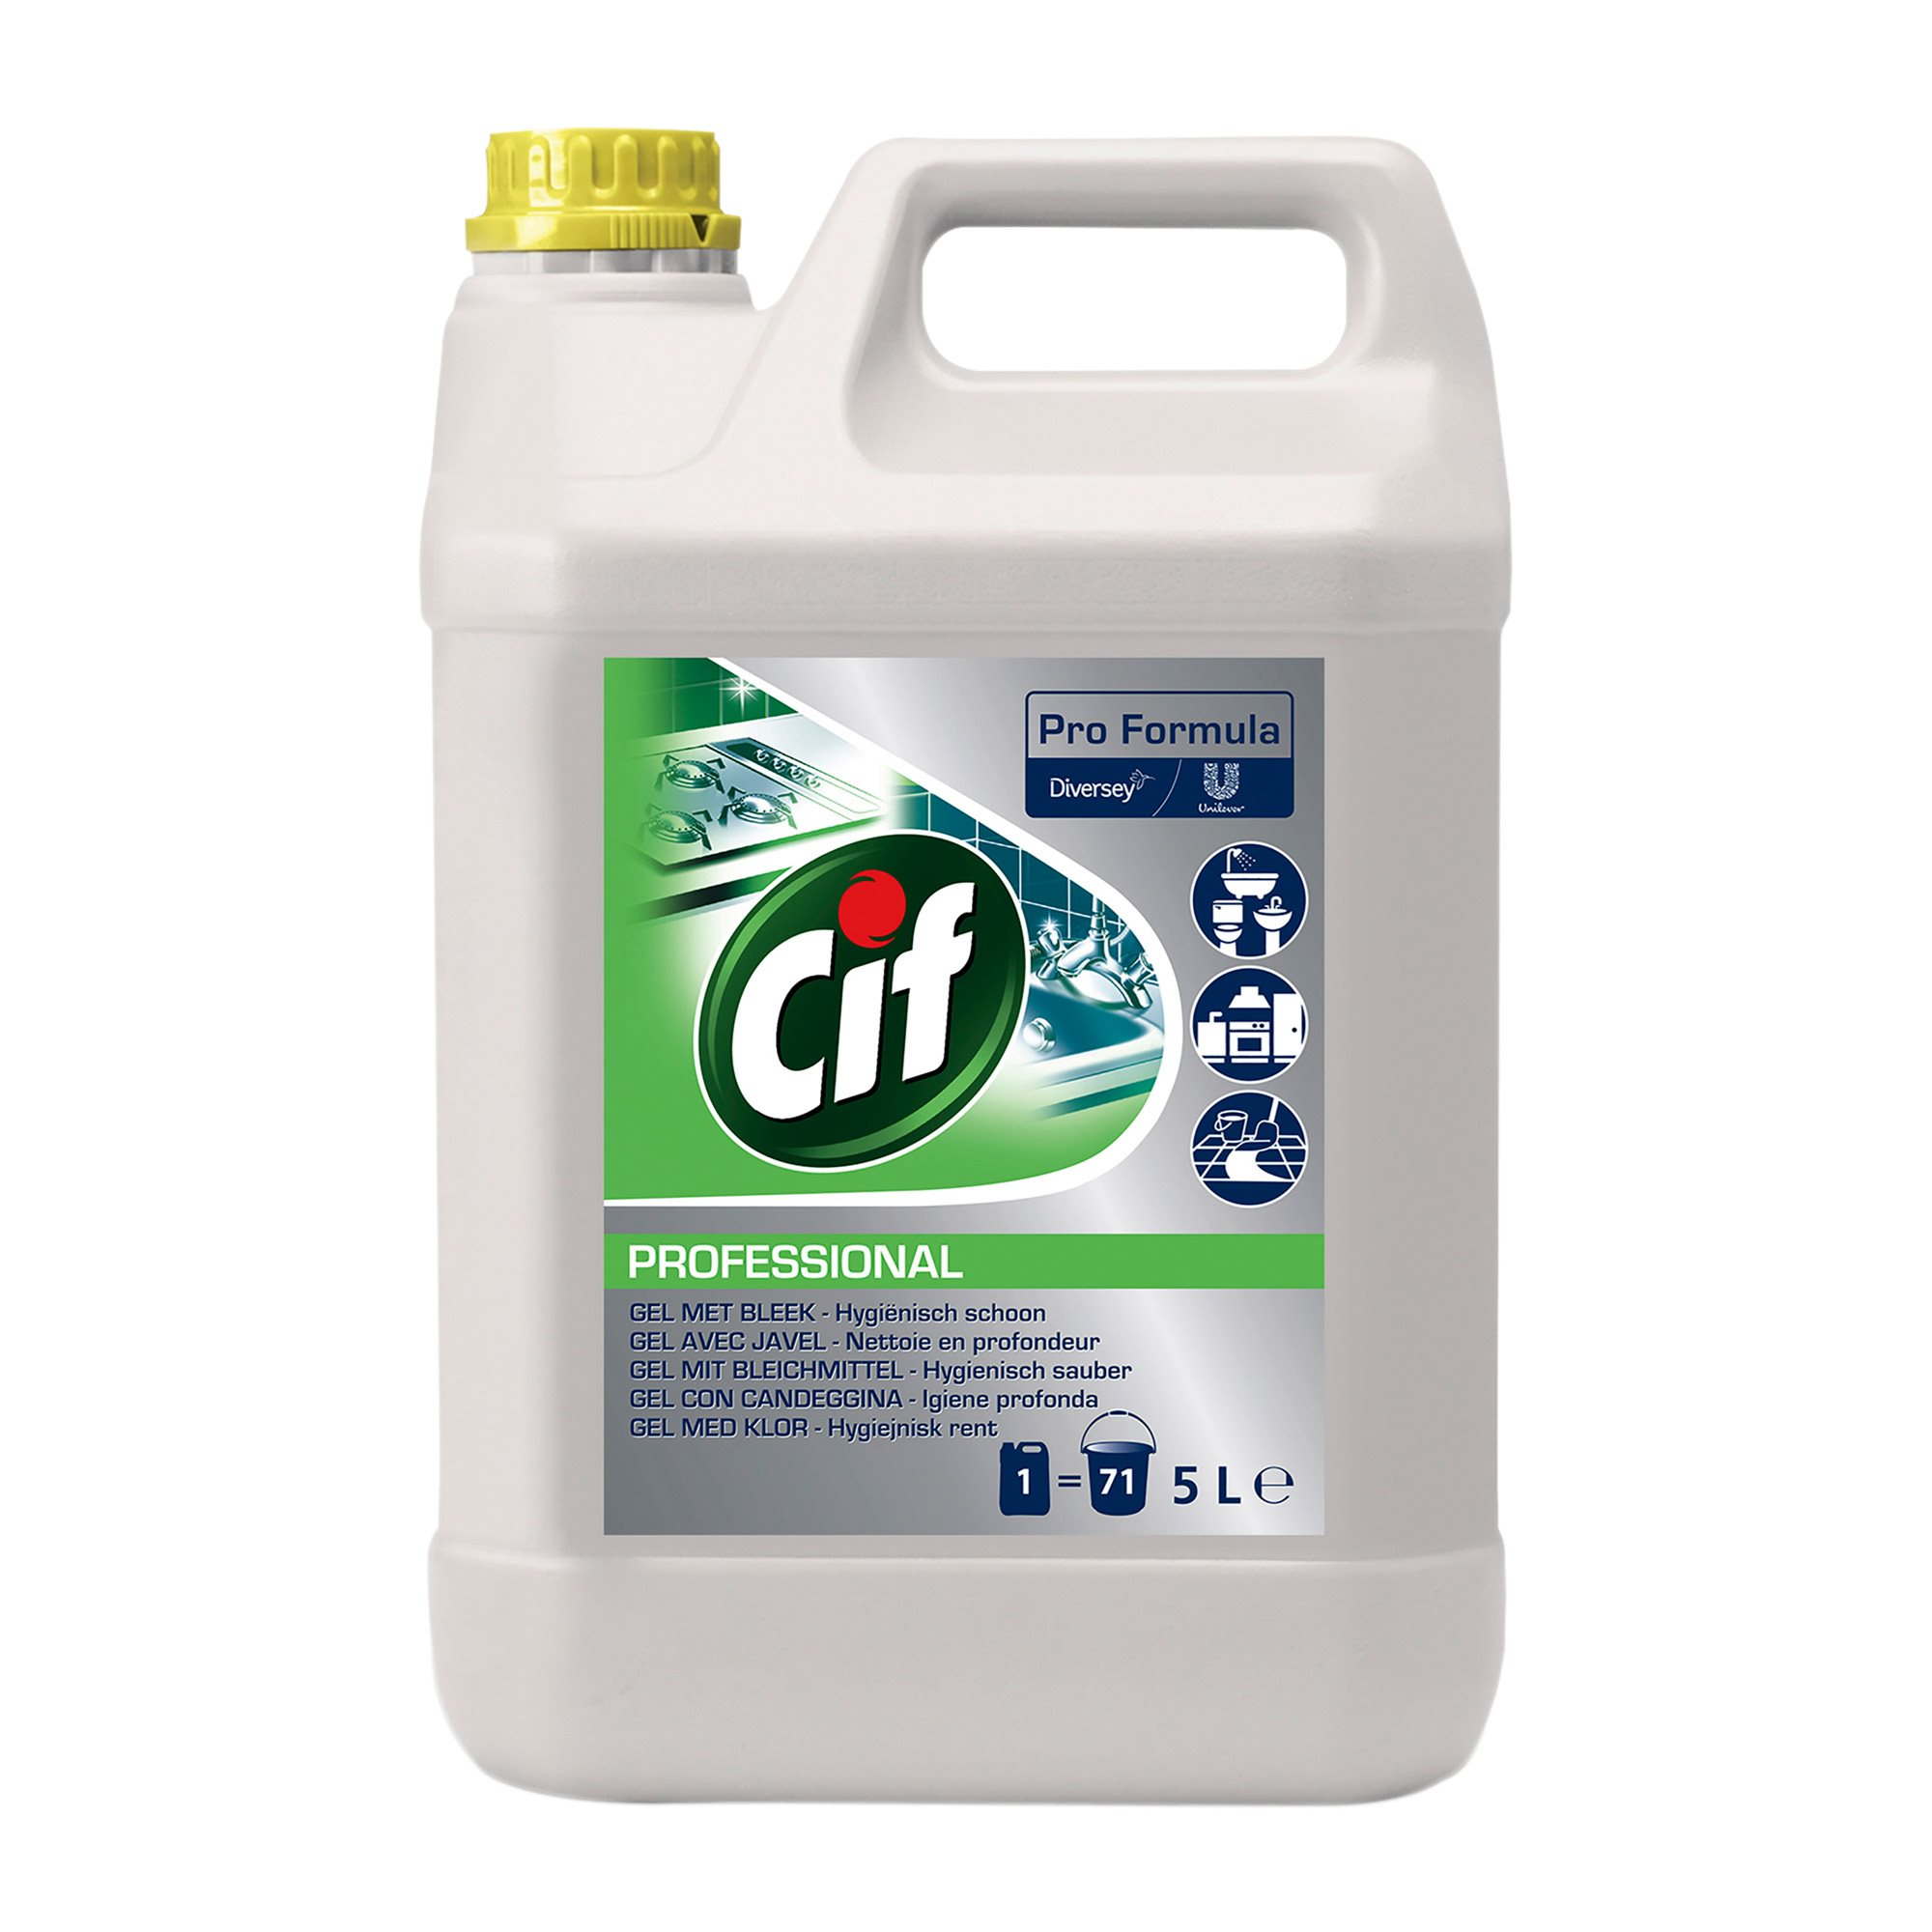 Can of 5 L cleanser Javel Cif Prof